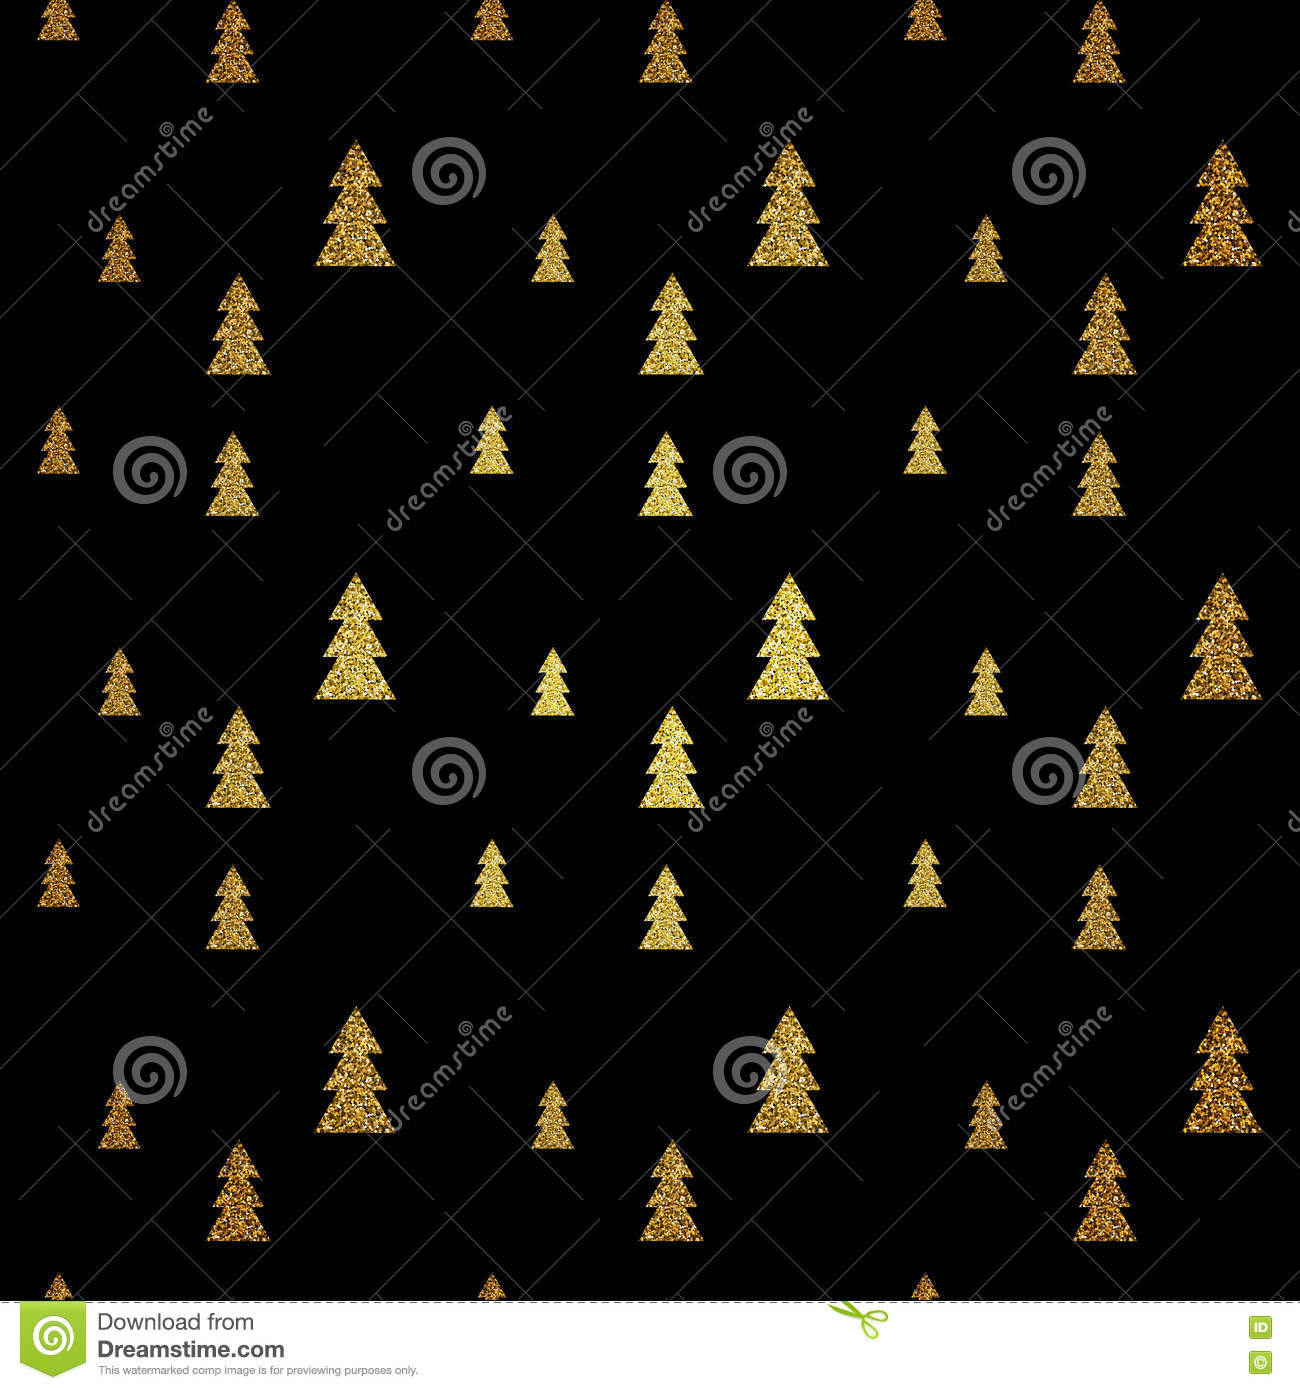 Seamless pattern of gold Christmas tree on black background. Vector